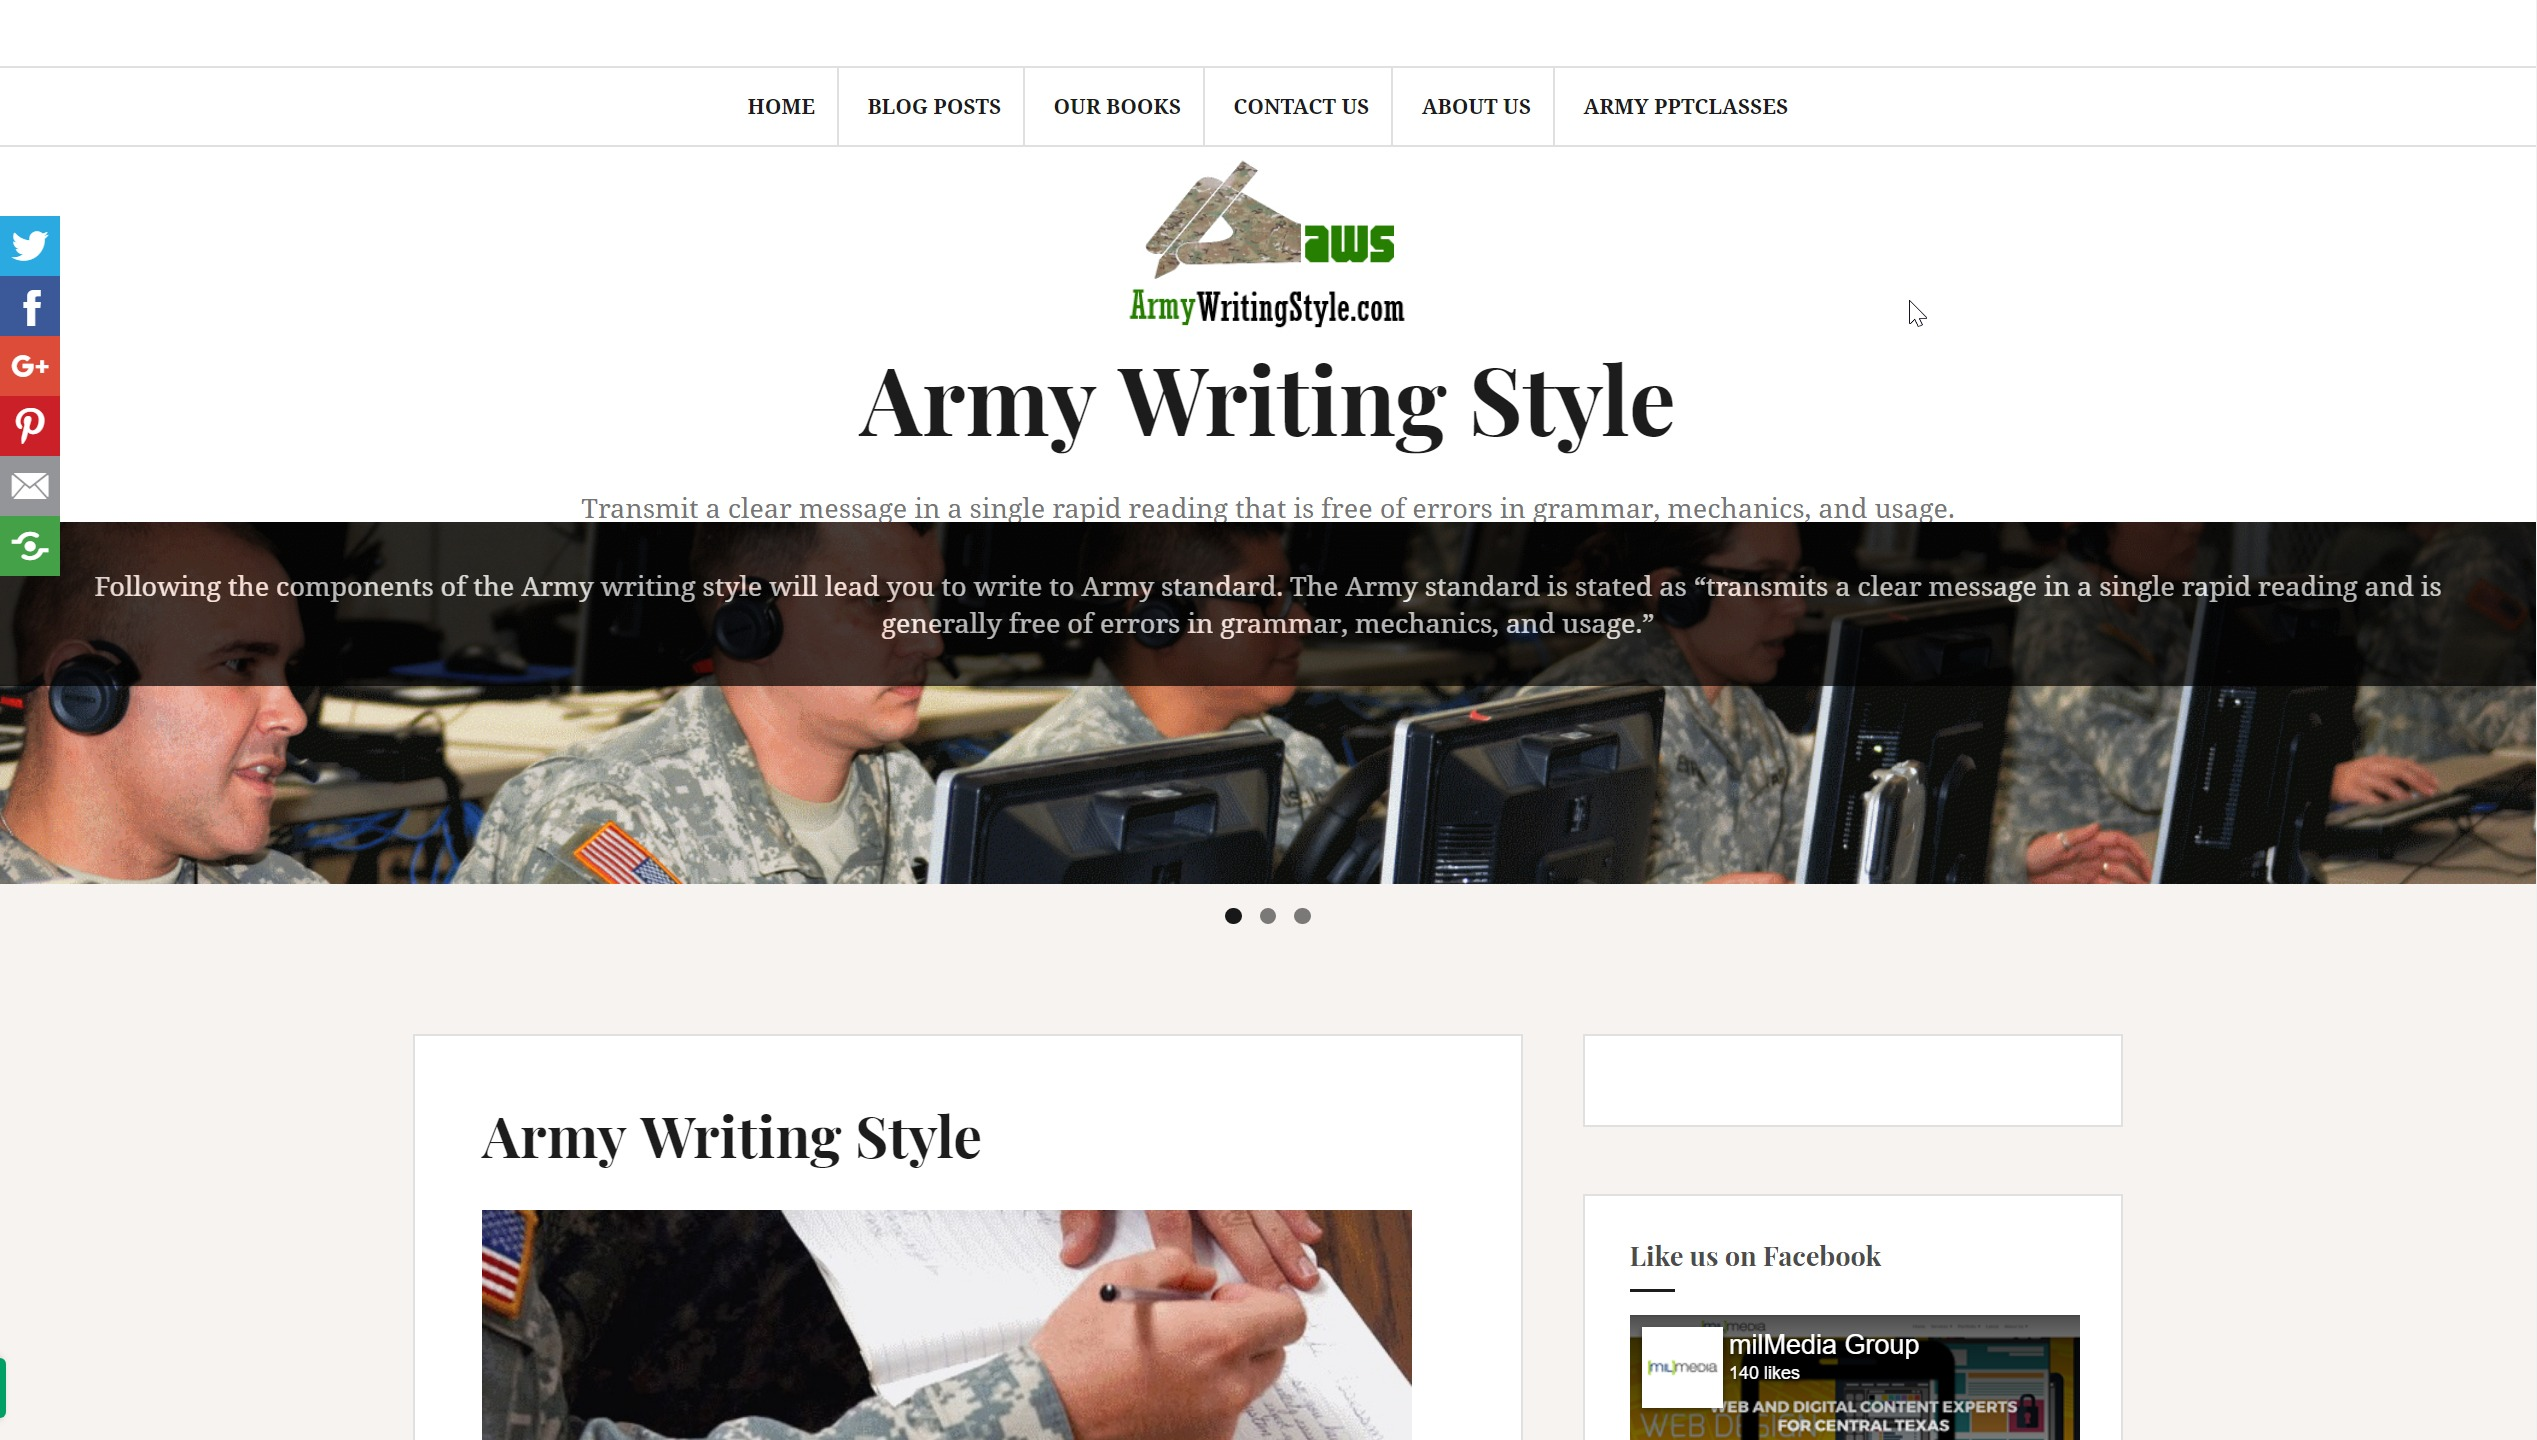 armywritingstyle.com webpage